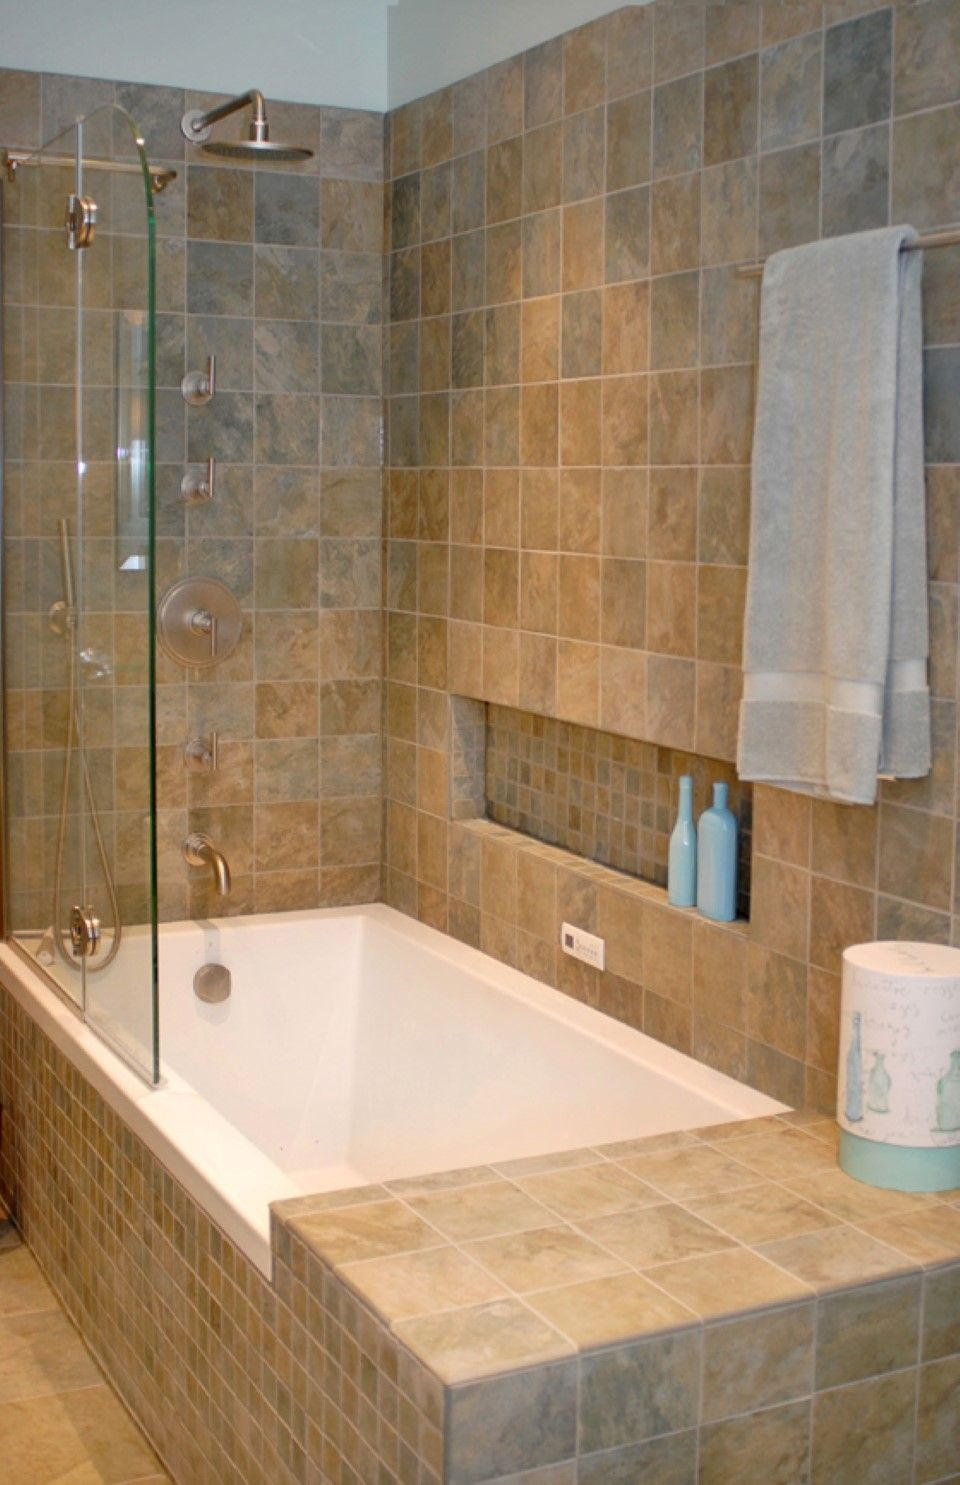 Modern tub shower combinations: traditional bathroom tile